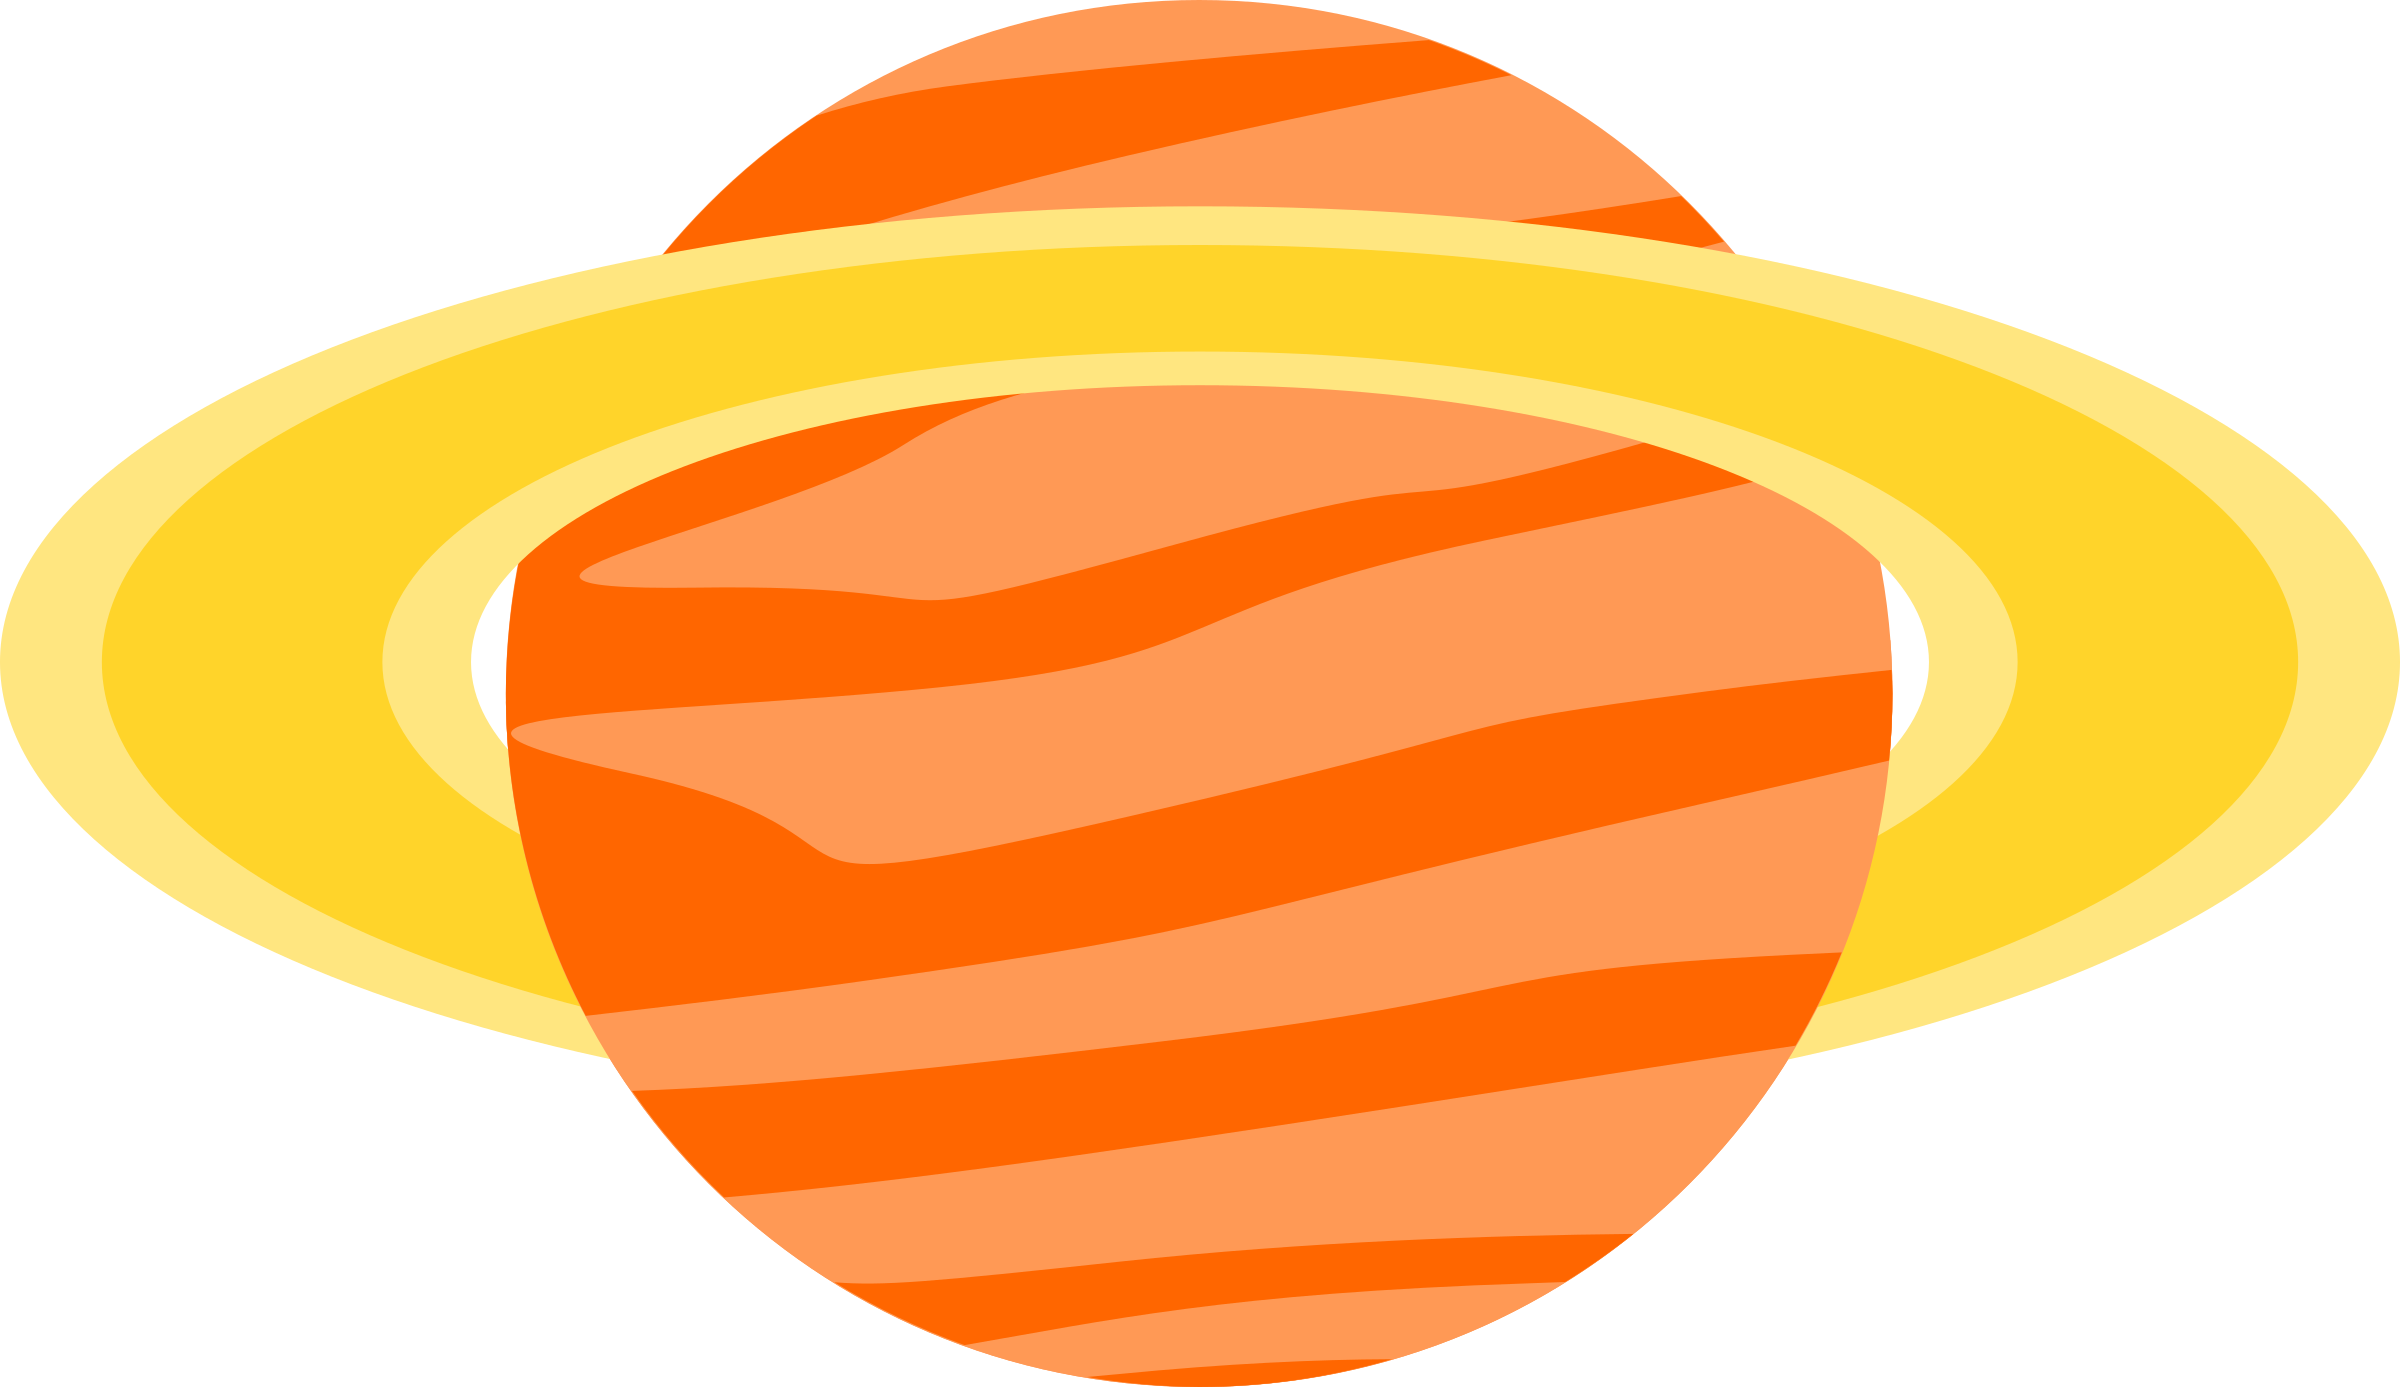 Planets clipart different. Planet big image png